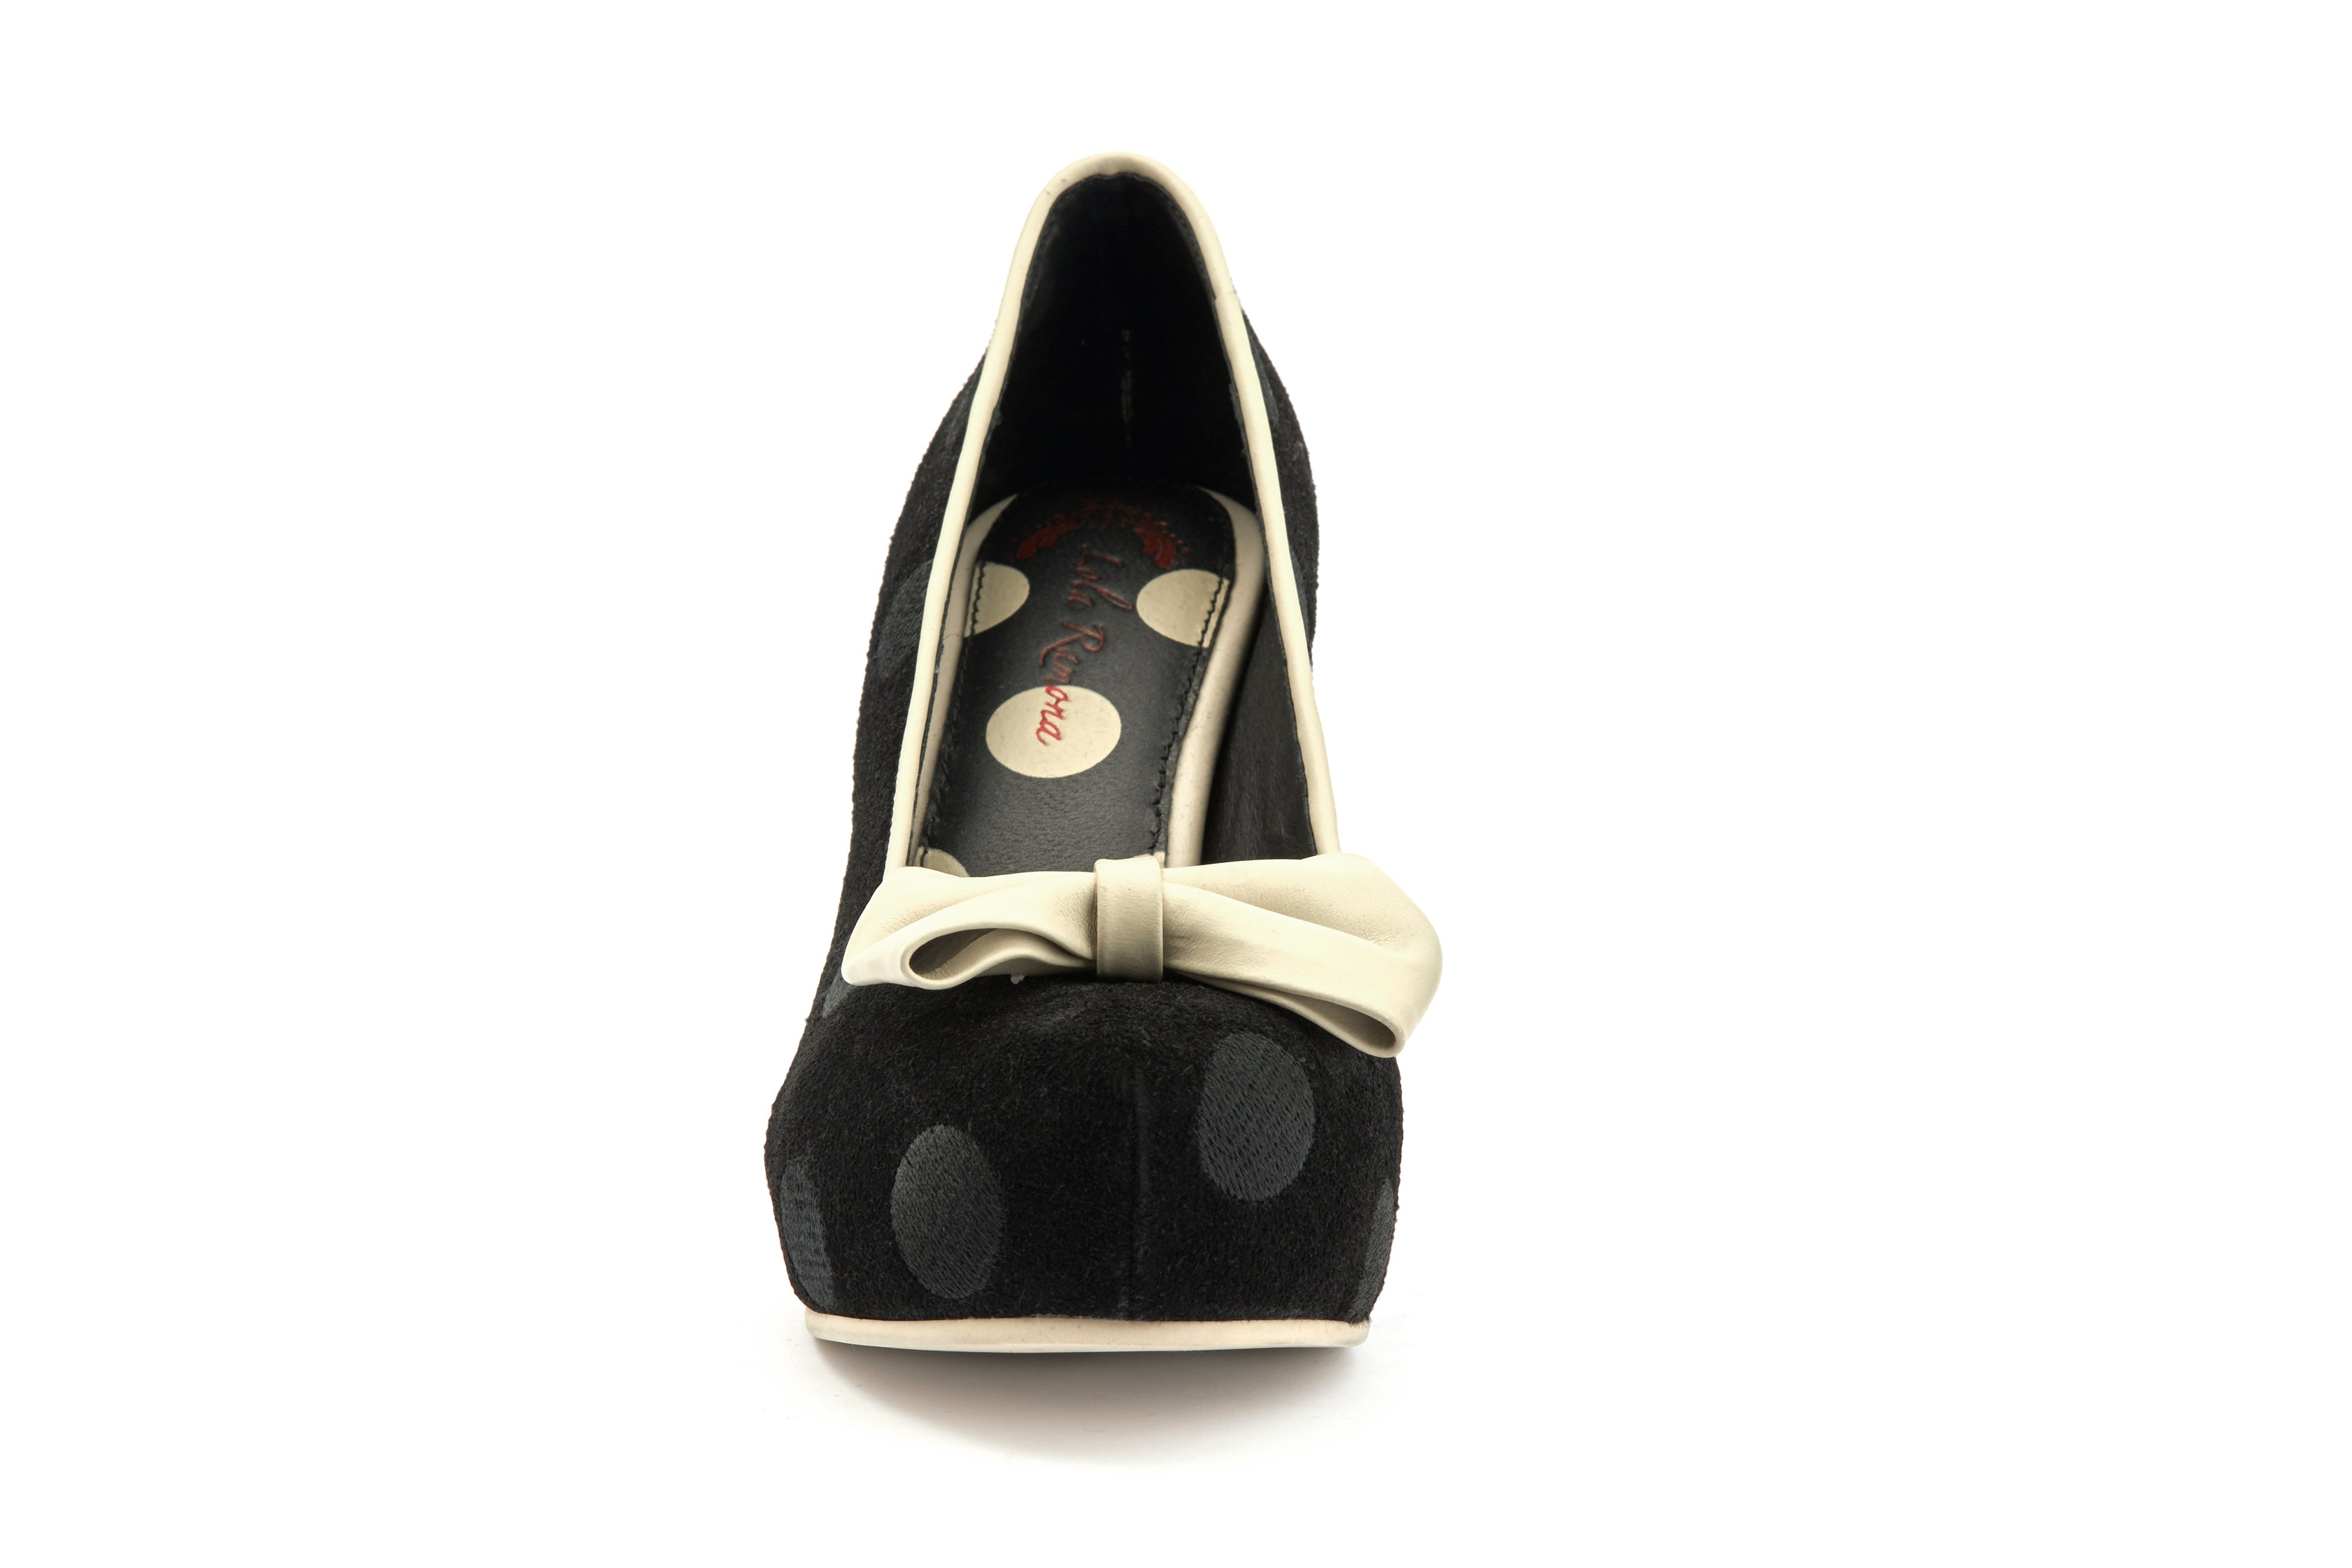 Pumps Platform Block High Heels Angie P Dots Black - Lola Ramona - Bombus